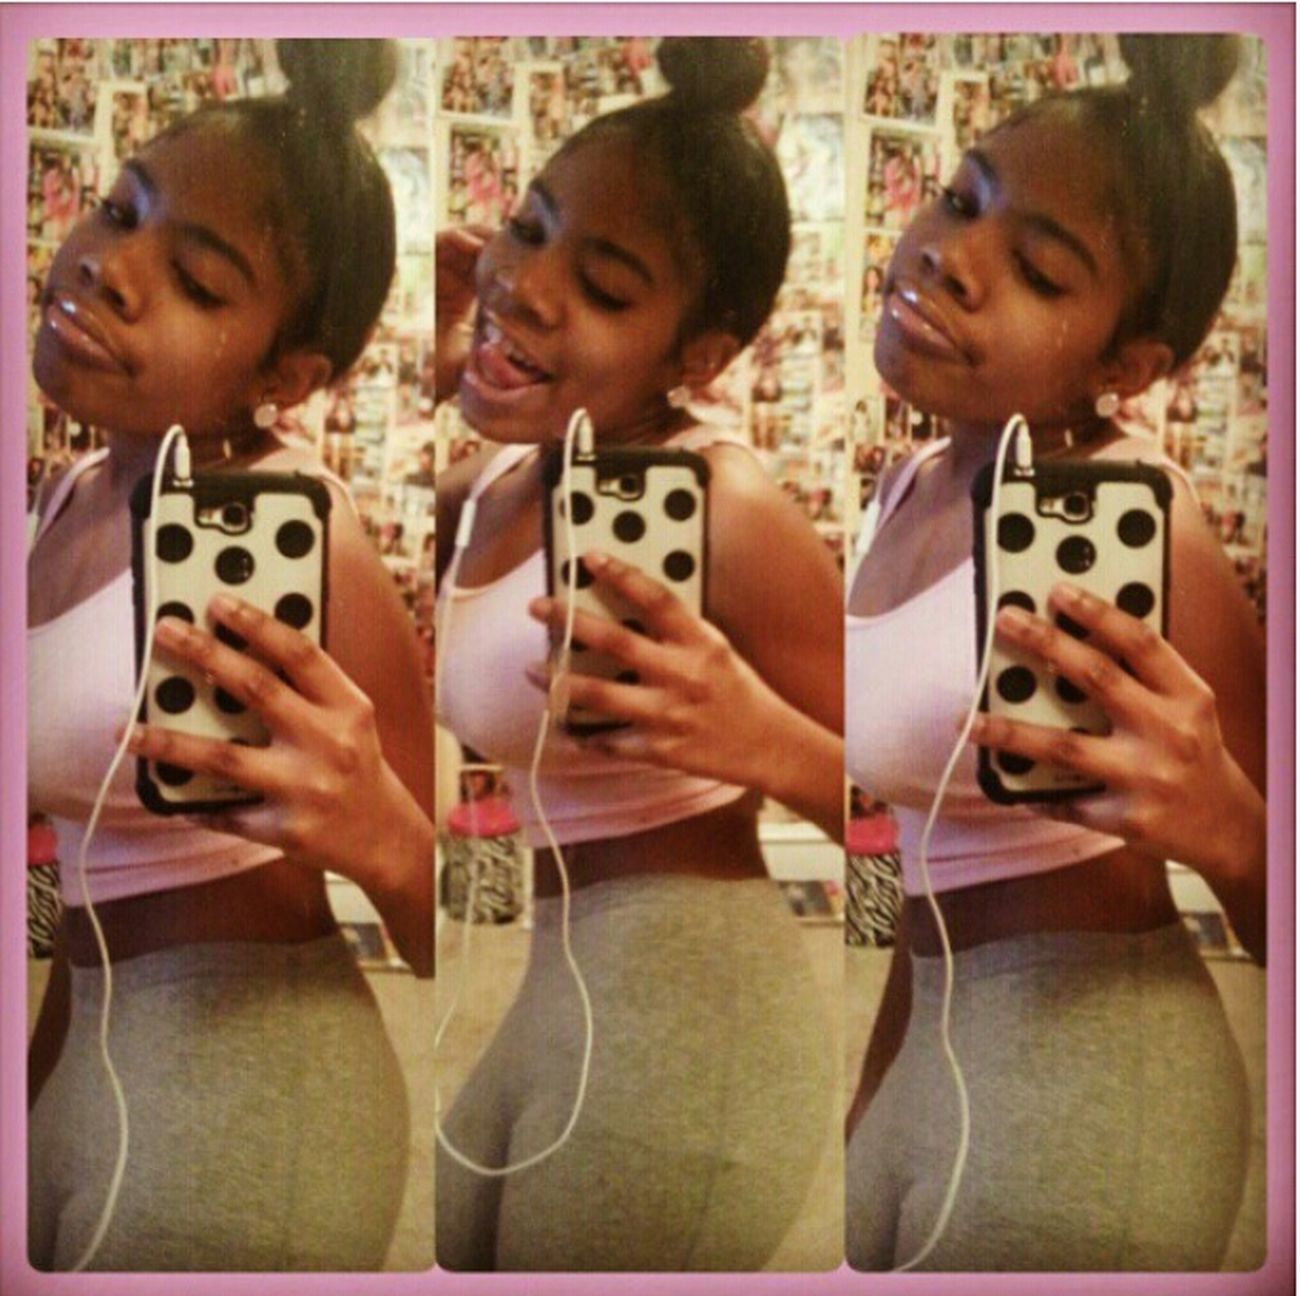 FOLLOW ME ON THE GRAM @__manaar ' NOW ! 